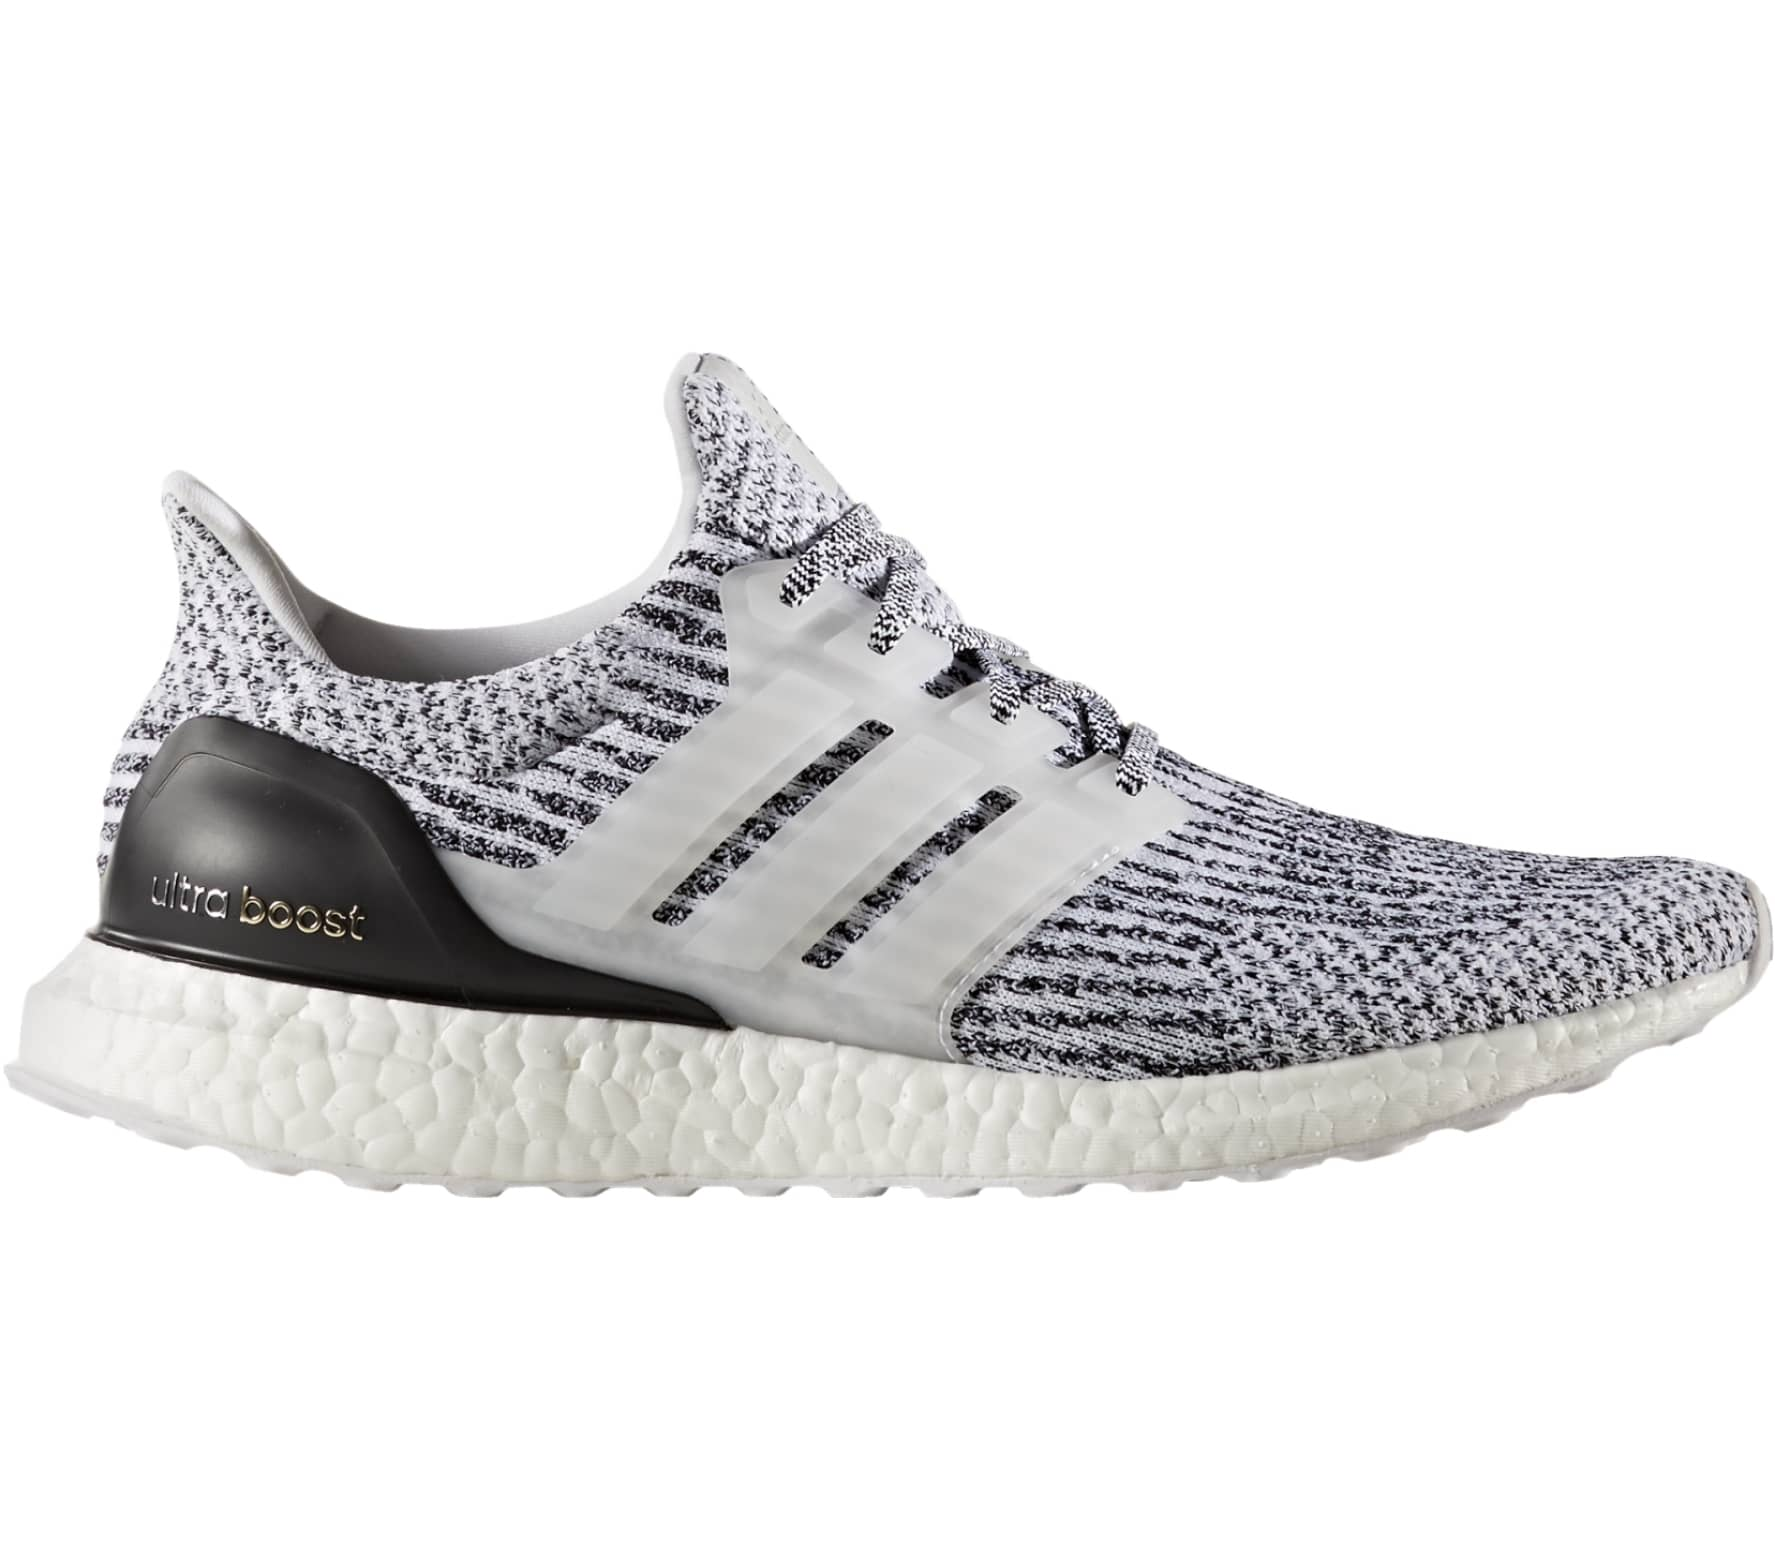 Adidas - Ultra Boost men's running shoes (white/black